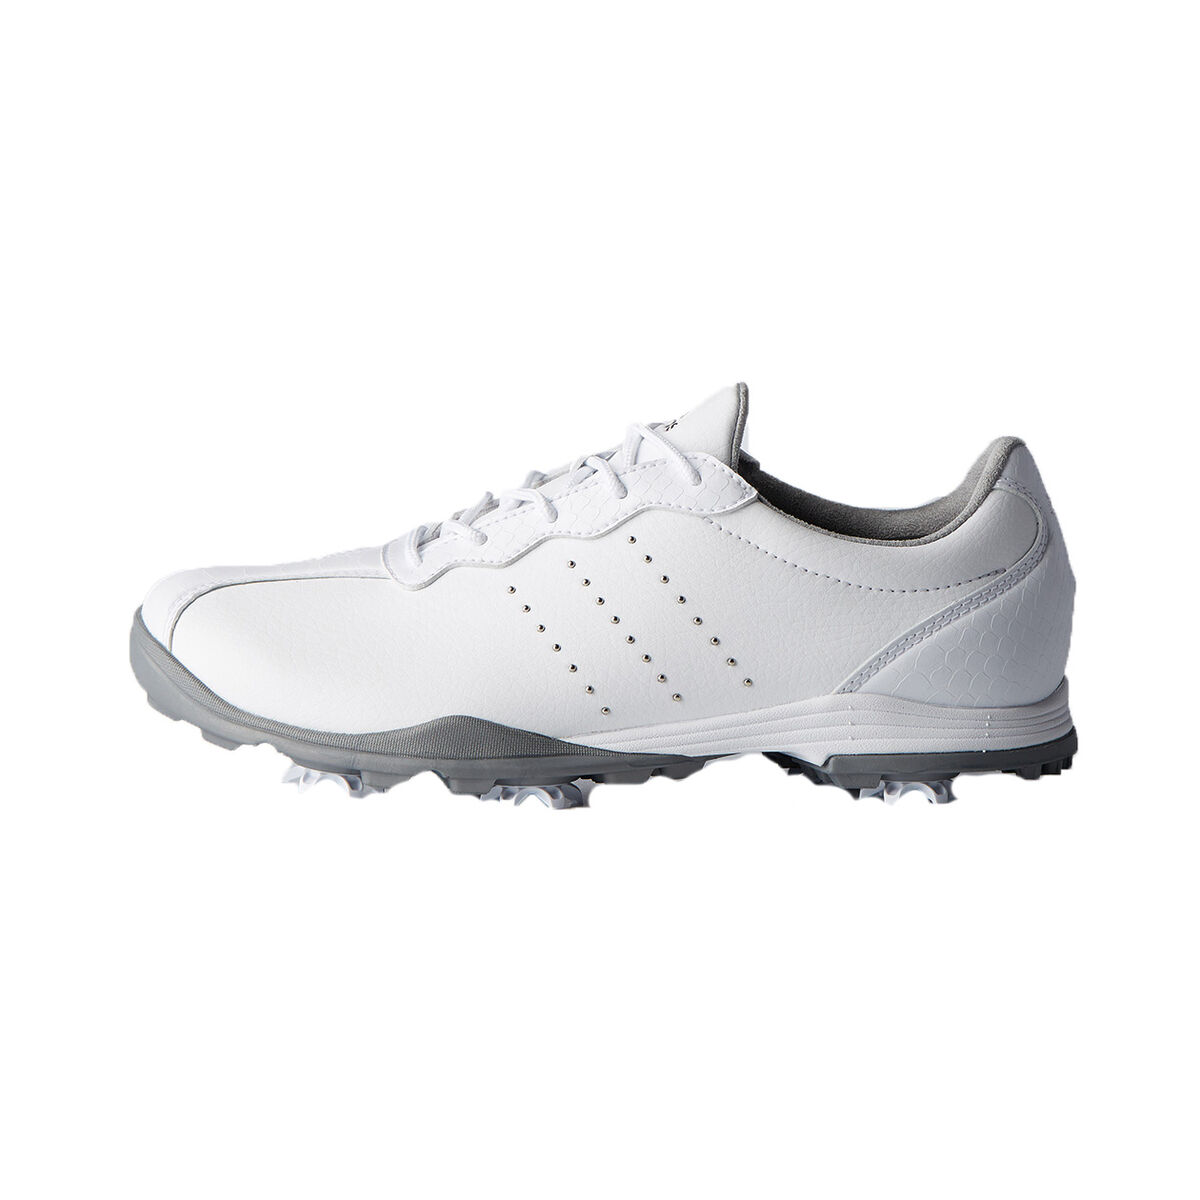 6732937bc67d01 Images. adidas adiPure DC Women  39 s Golf Shoe - White Silver